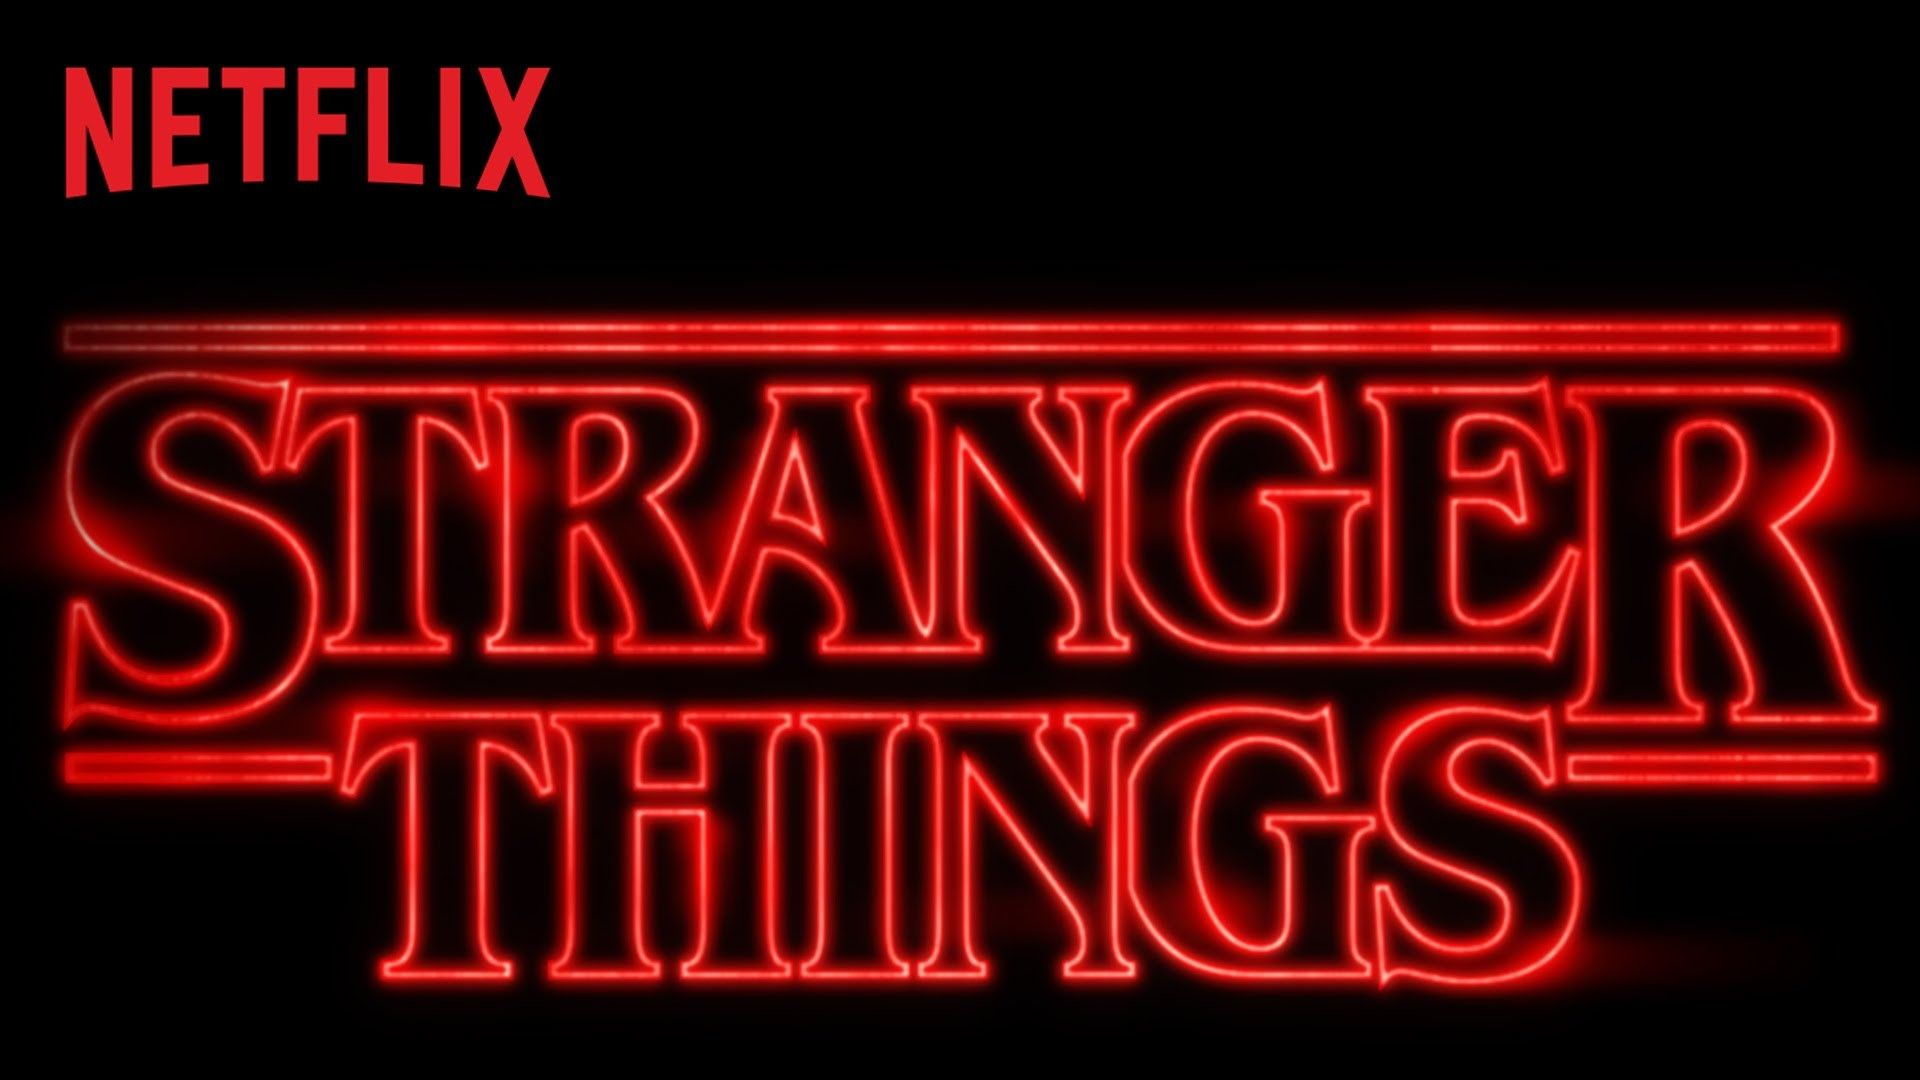 1920x1080 Netflix Wallpapers (70+ images)